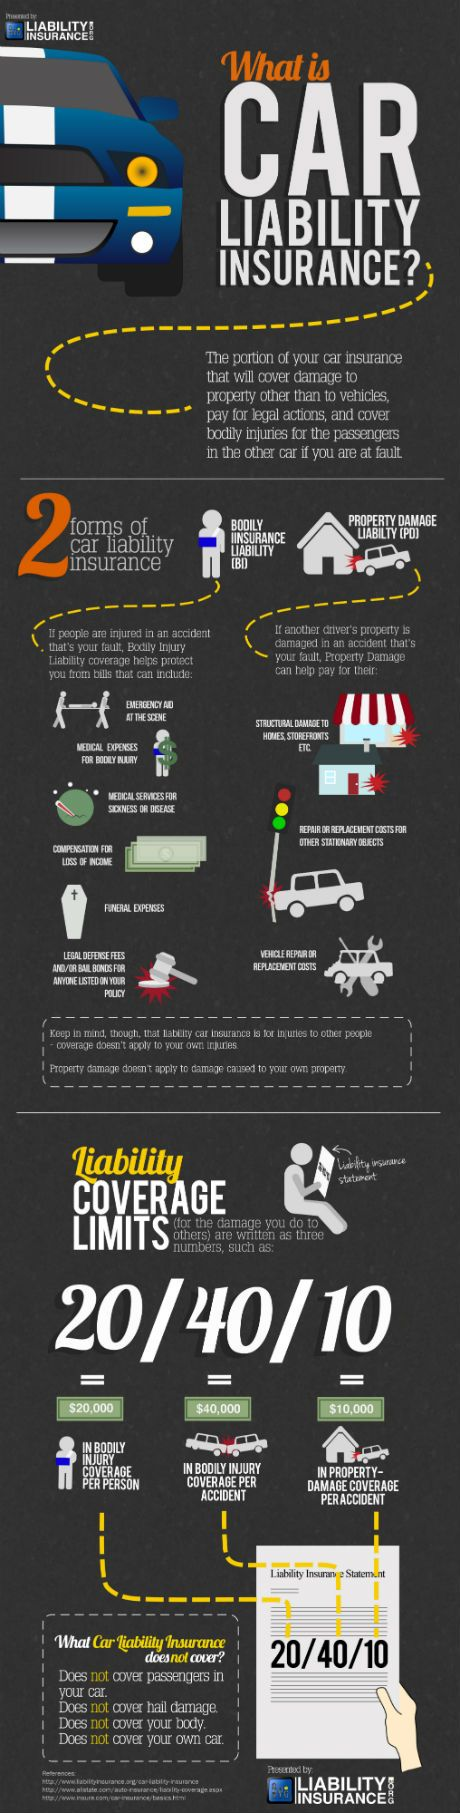 car liability insurance infographic cars and trucks and things that go pinterest voiture. Black Bedroom Furniture Sets. Home Design Ideas